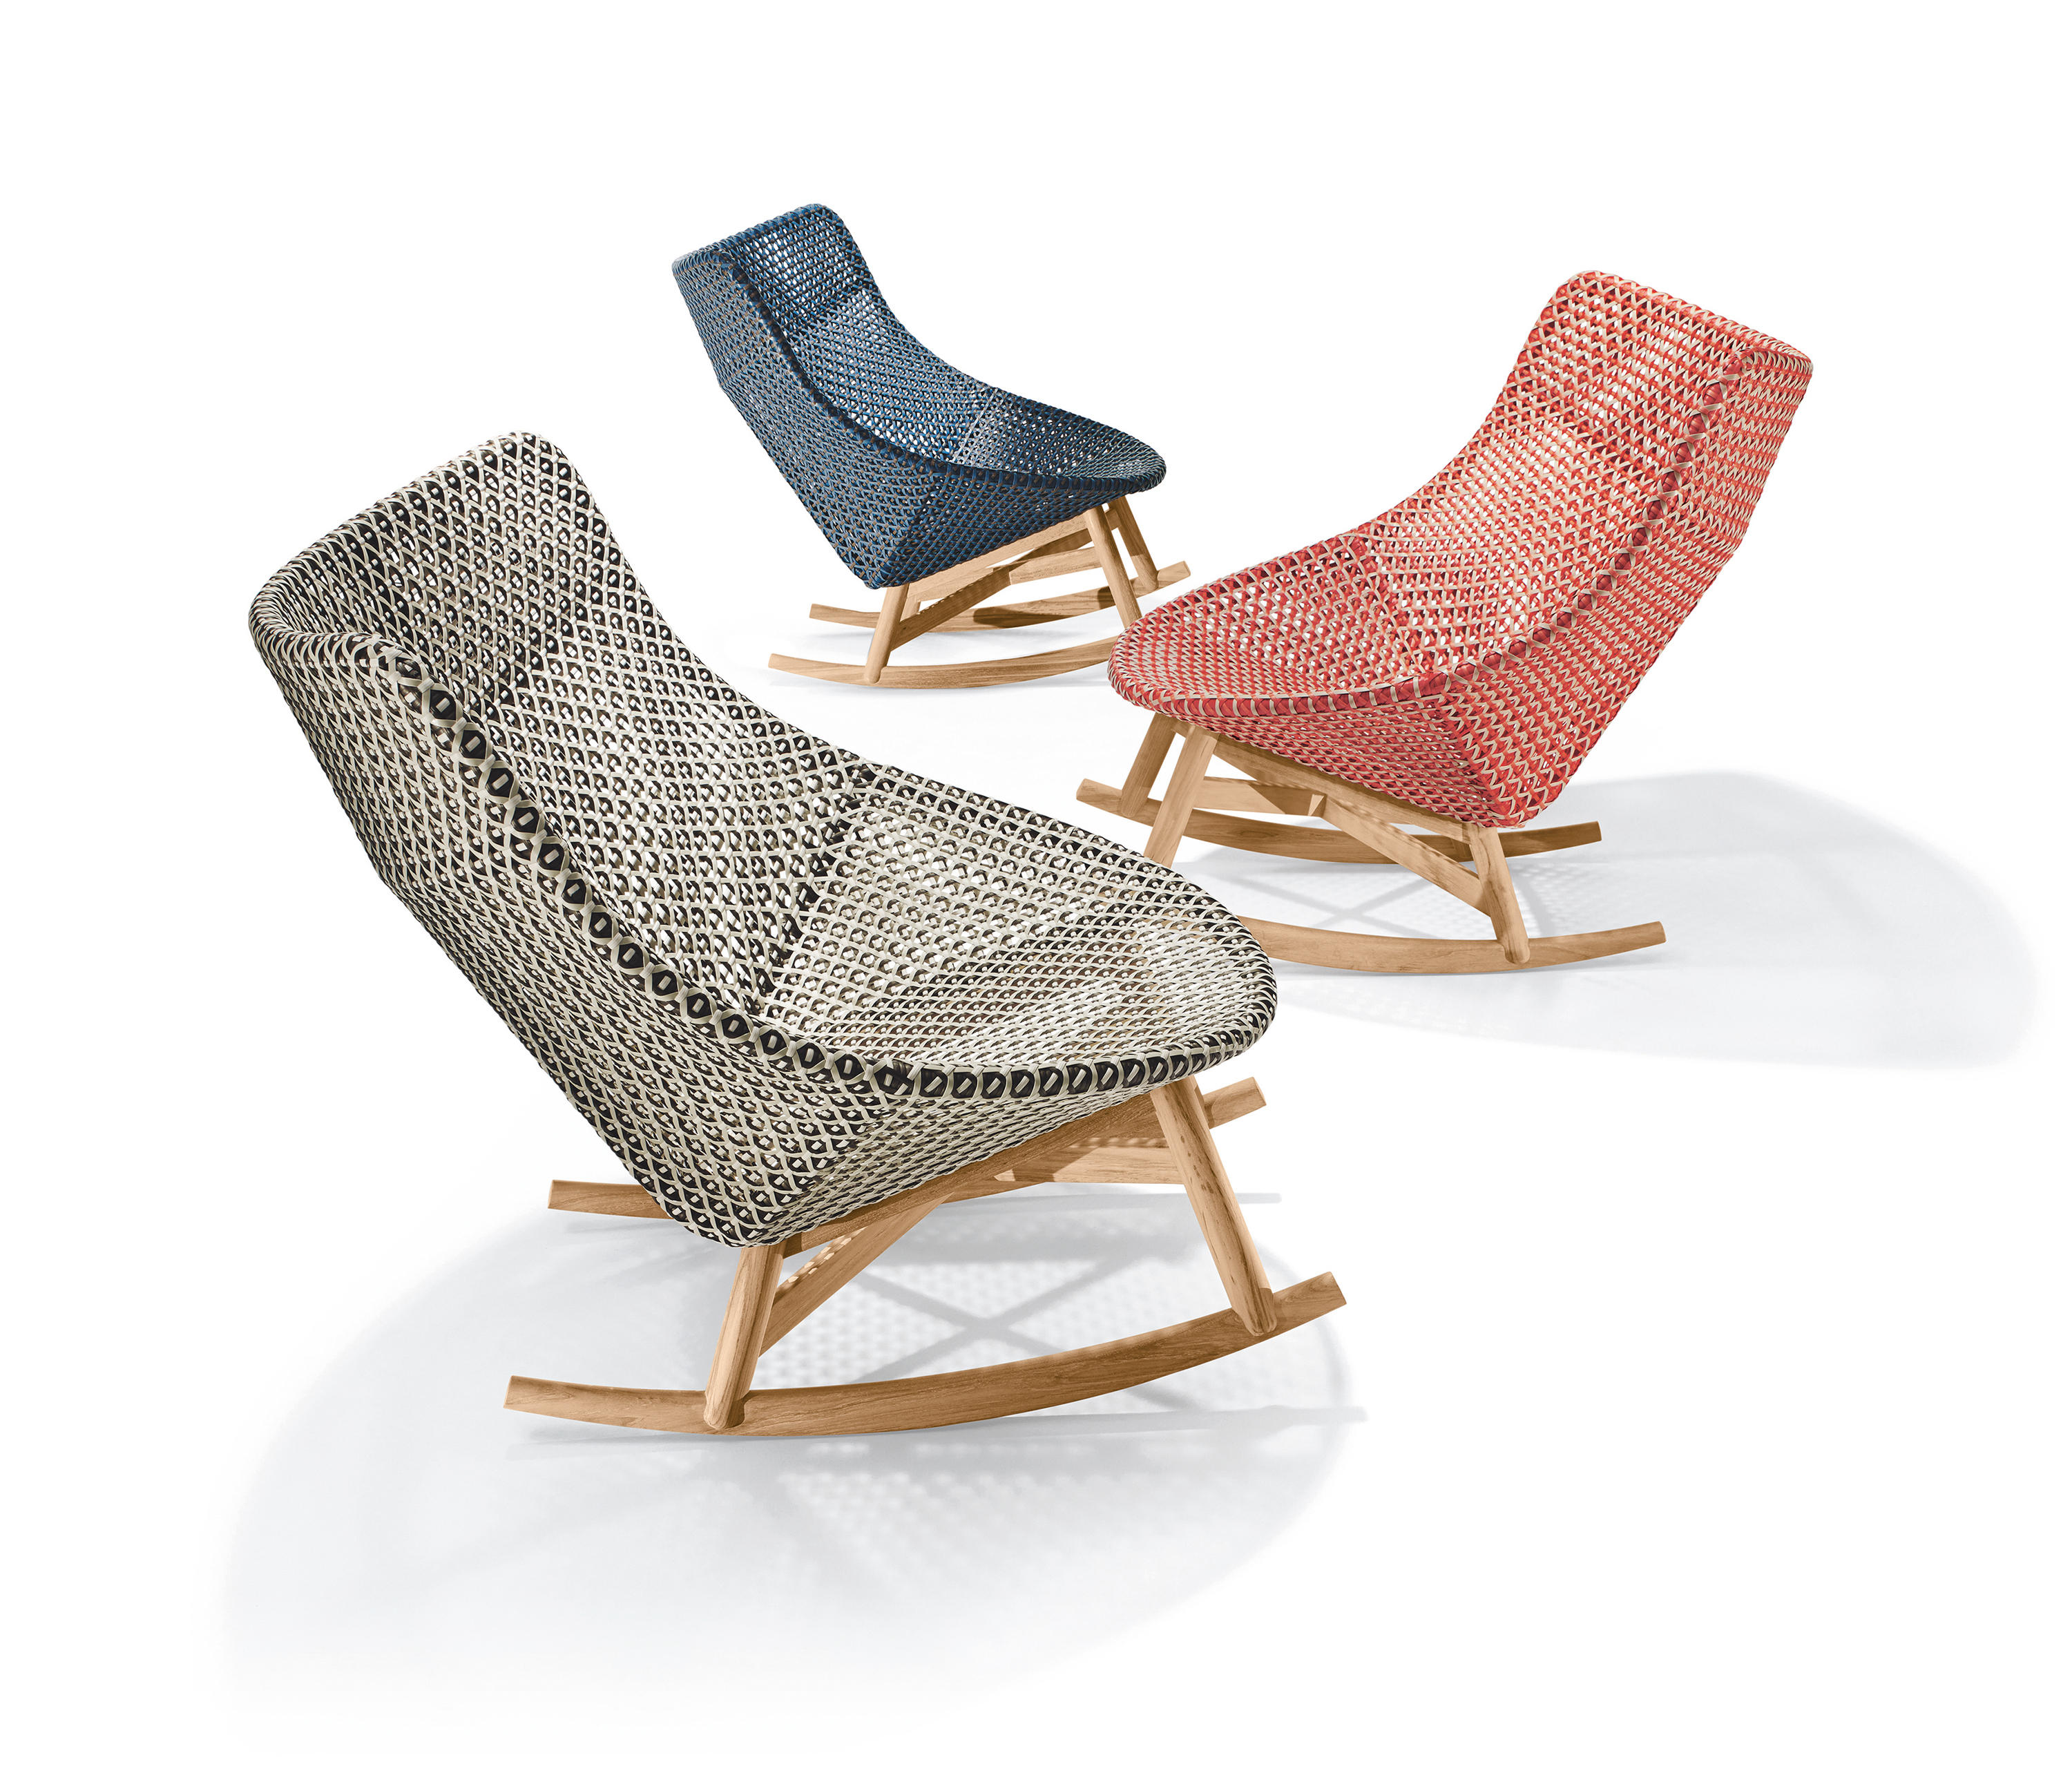 MBRACE ROCKING CHAIR Garden armchairs from DEDON